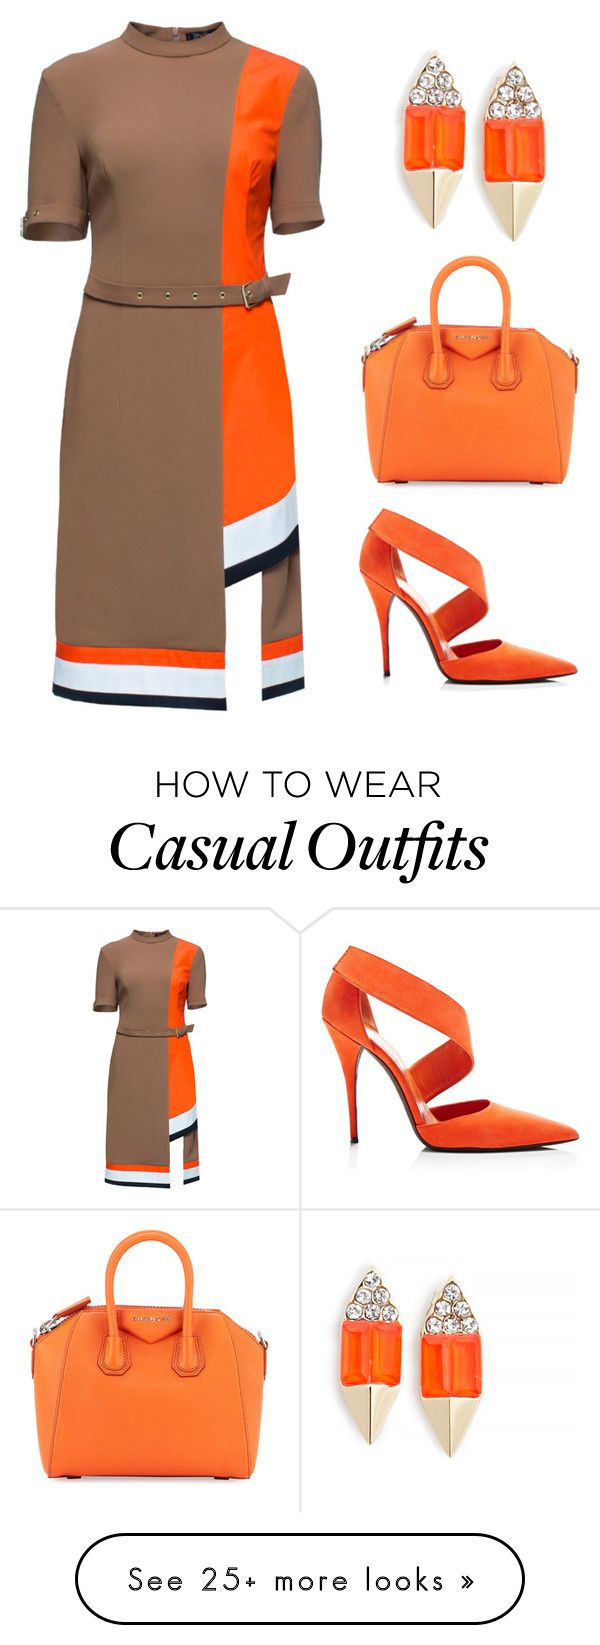 """Orange Work Casual"" by karmen-robles on Polyvore featuring Lattori, Narciso Rodriguez, Givenchy and Carolyn Colby"